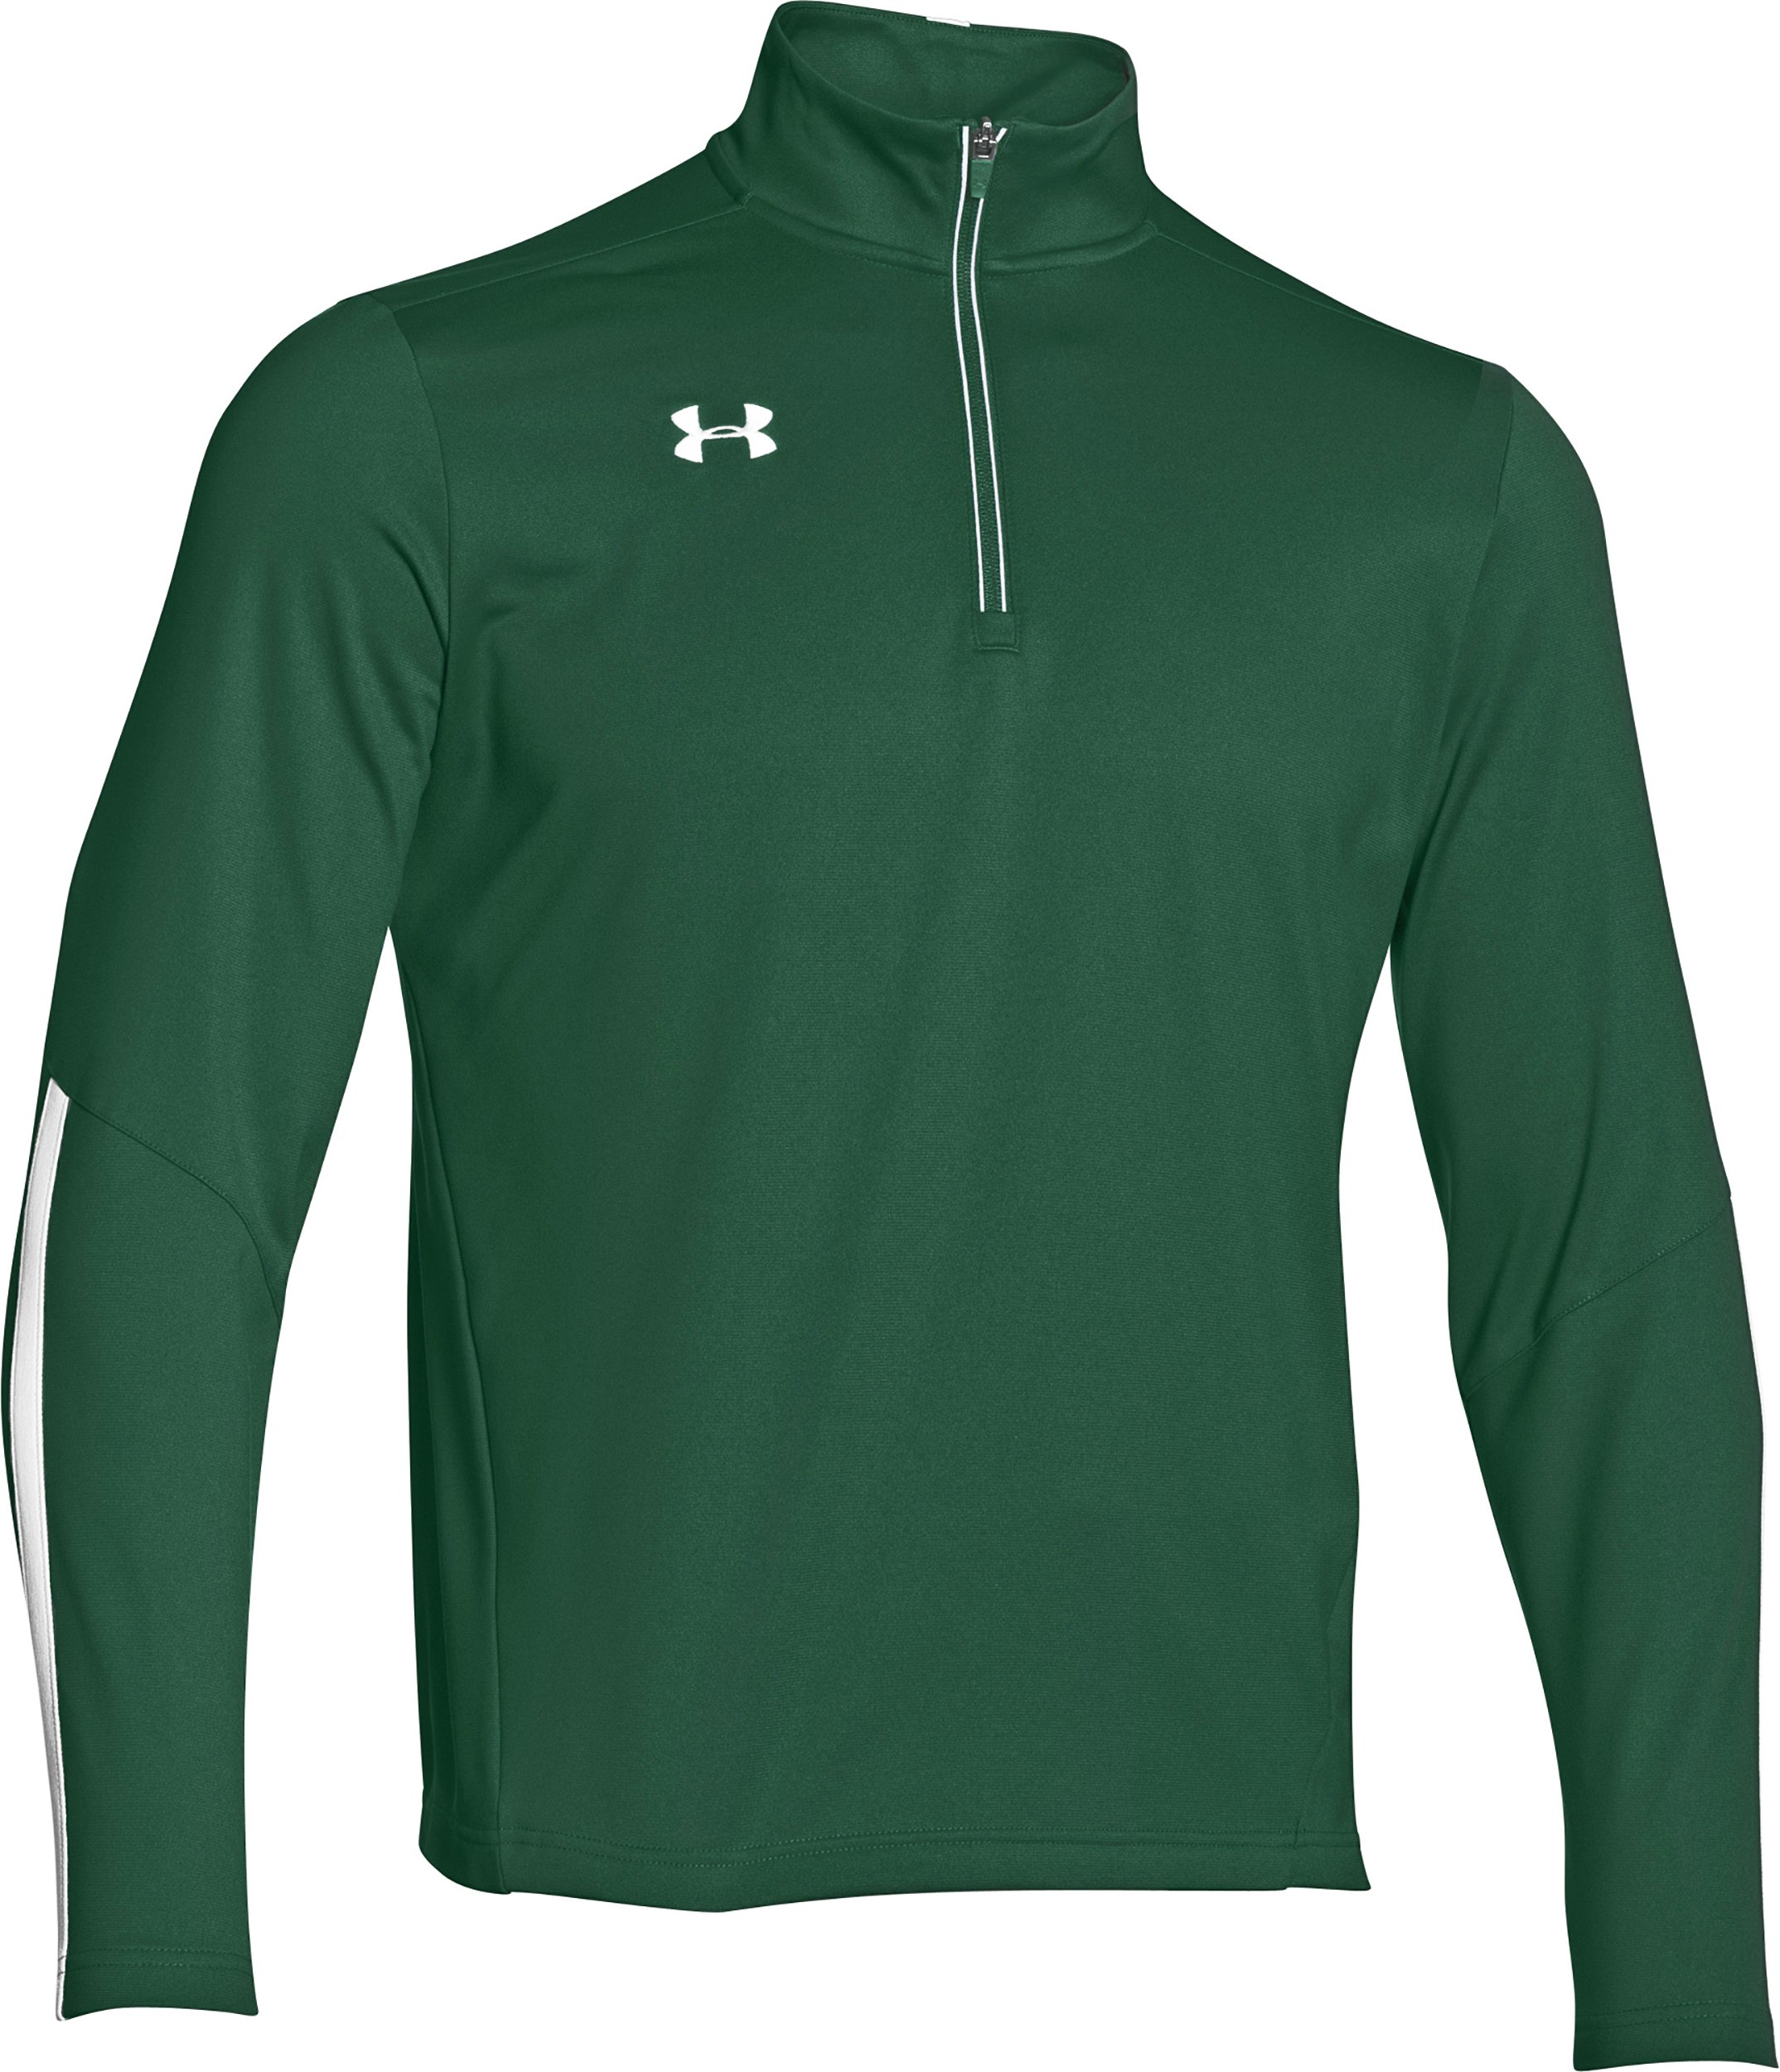 Under Armour Men's Qualifier 1/4 Zip Pullover (Small, Green/White) by Under Armour